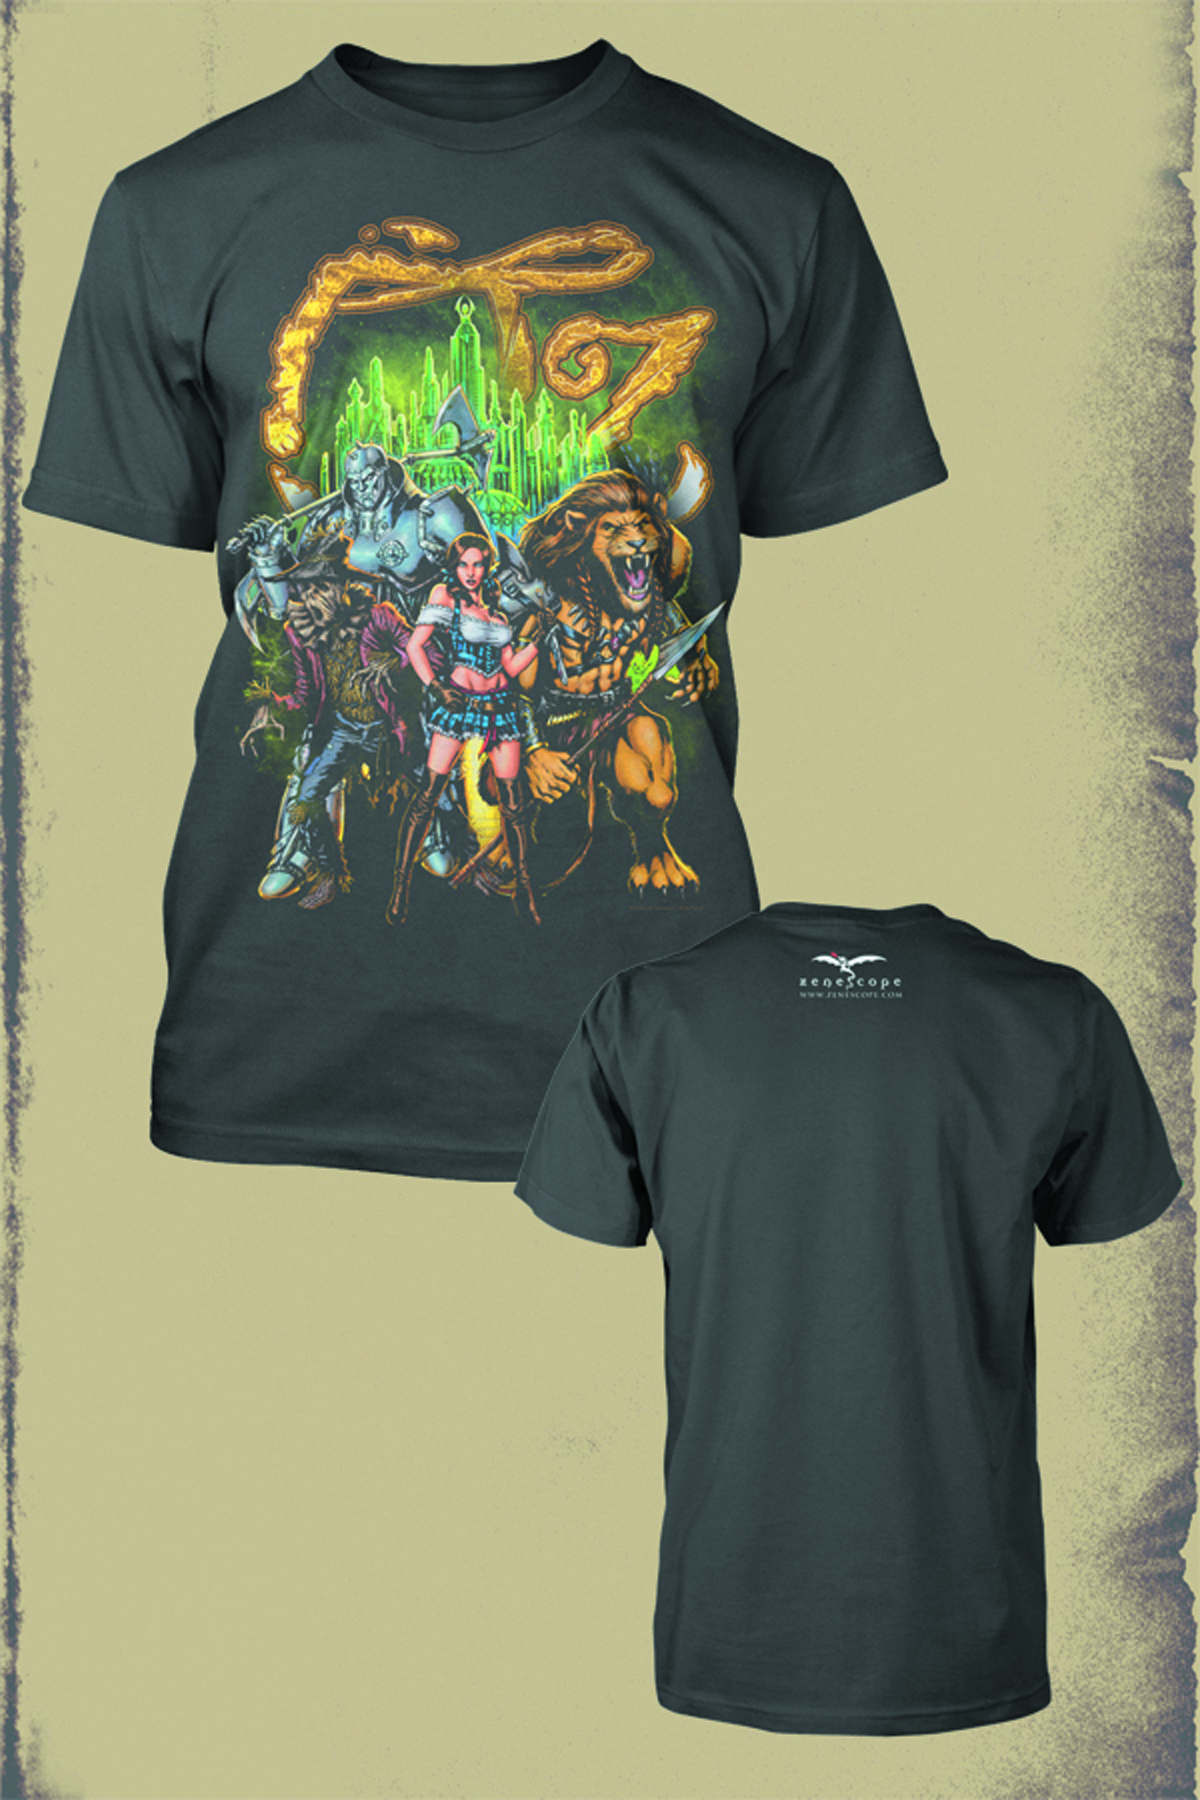 ZENESCOPE OZ EMERALD CITY PX CHARCOAL T/S XXL